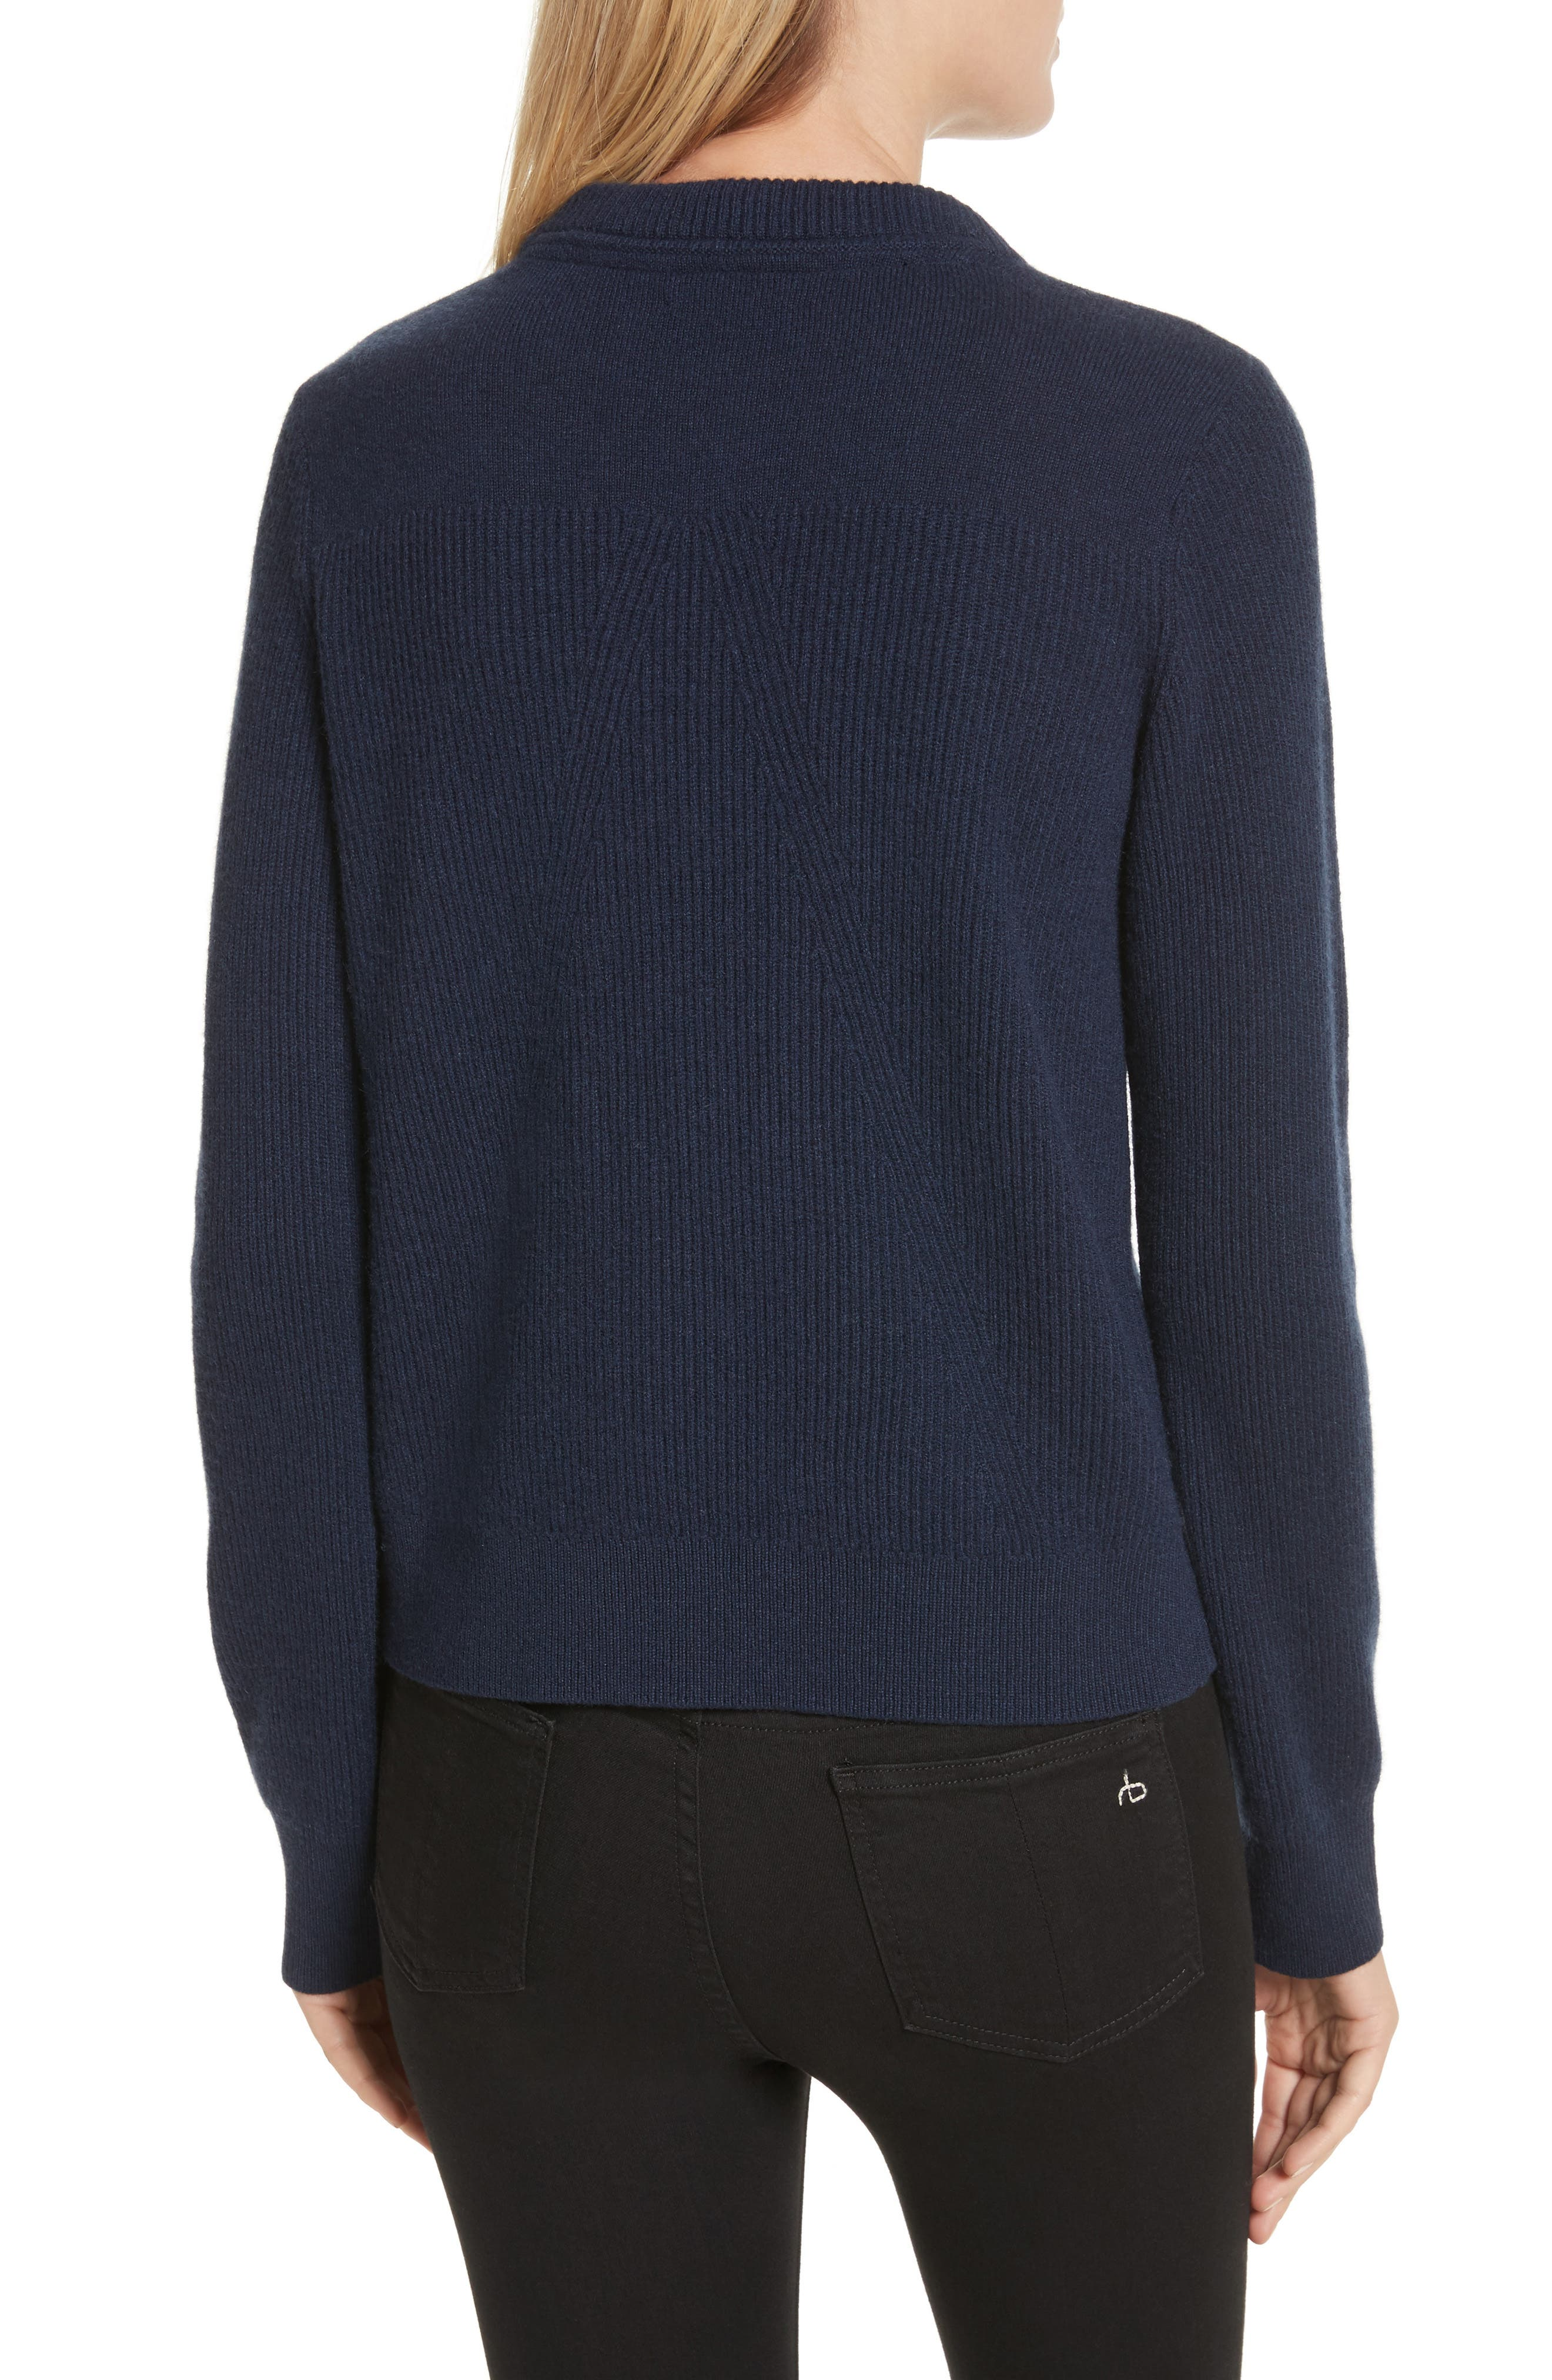 Ace Cashmere Crop Sweater,                             Alternate thumbnail 2, color,                             Navy